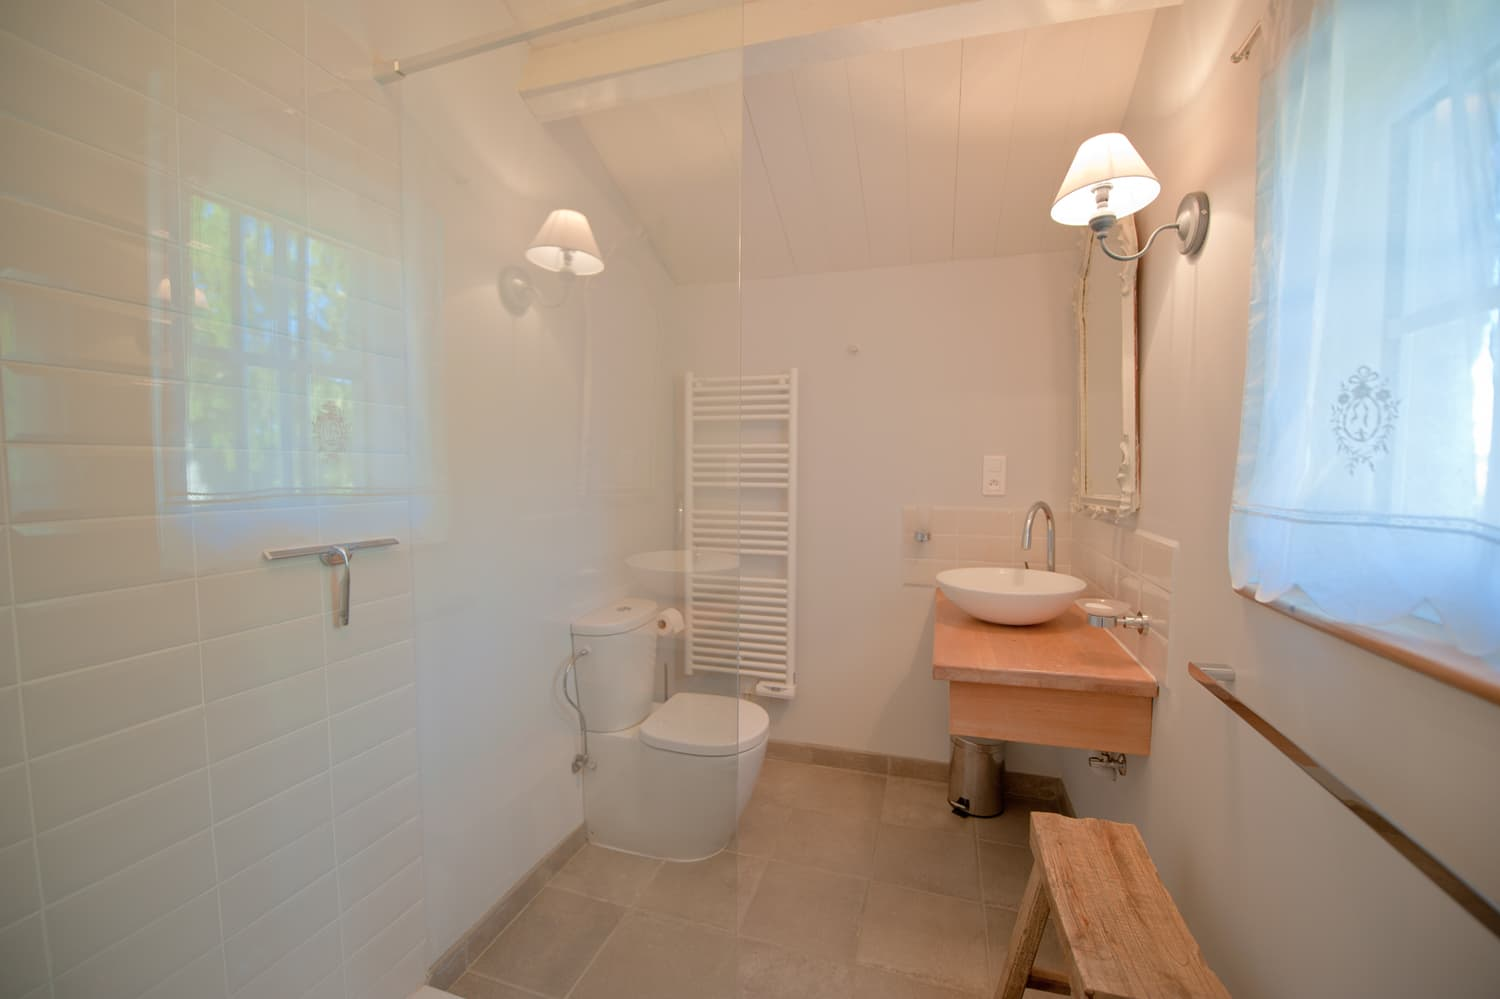 Bathroom in Dordogne rental home